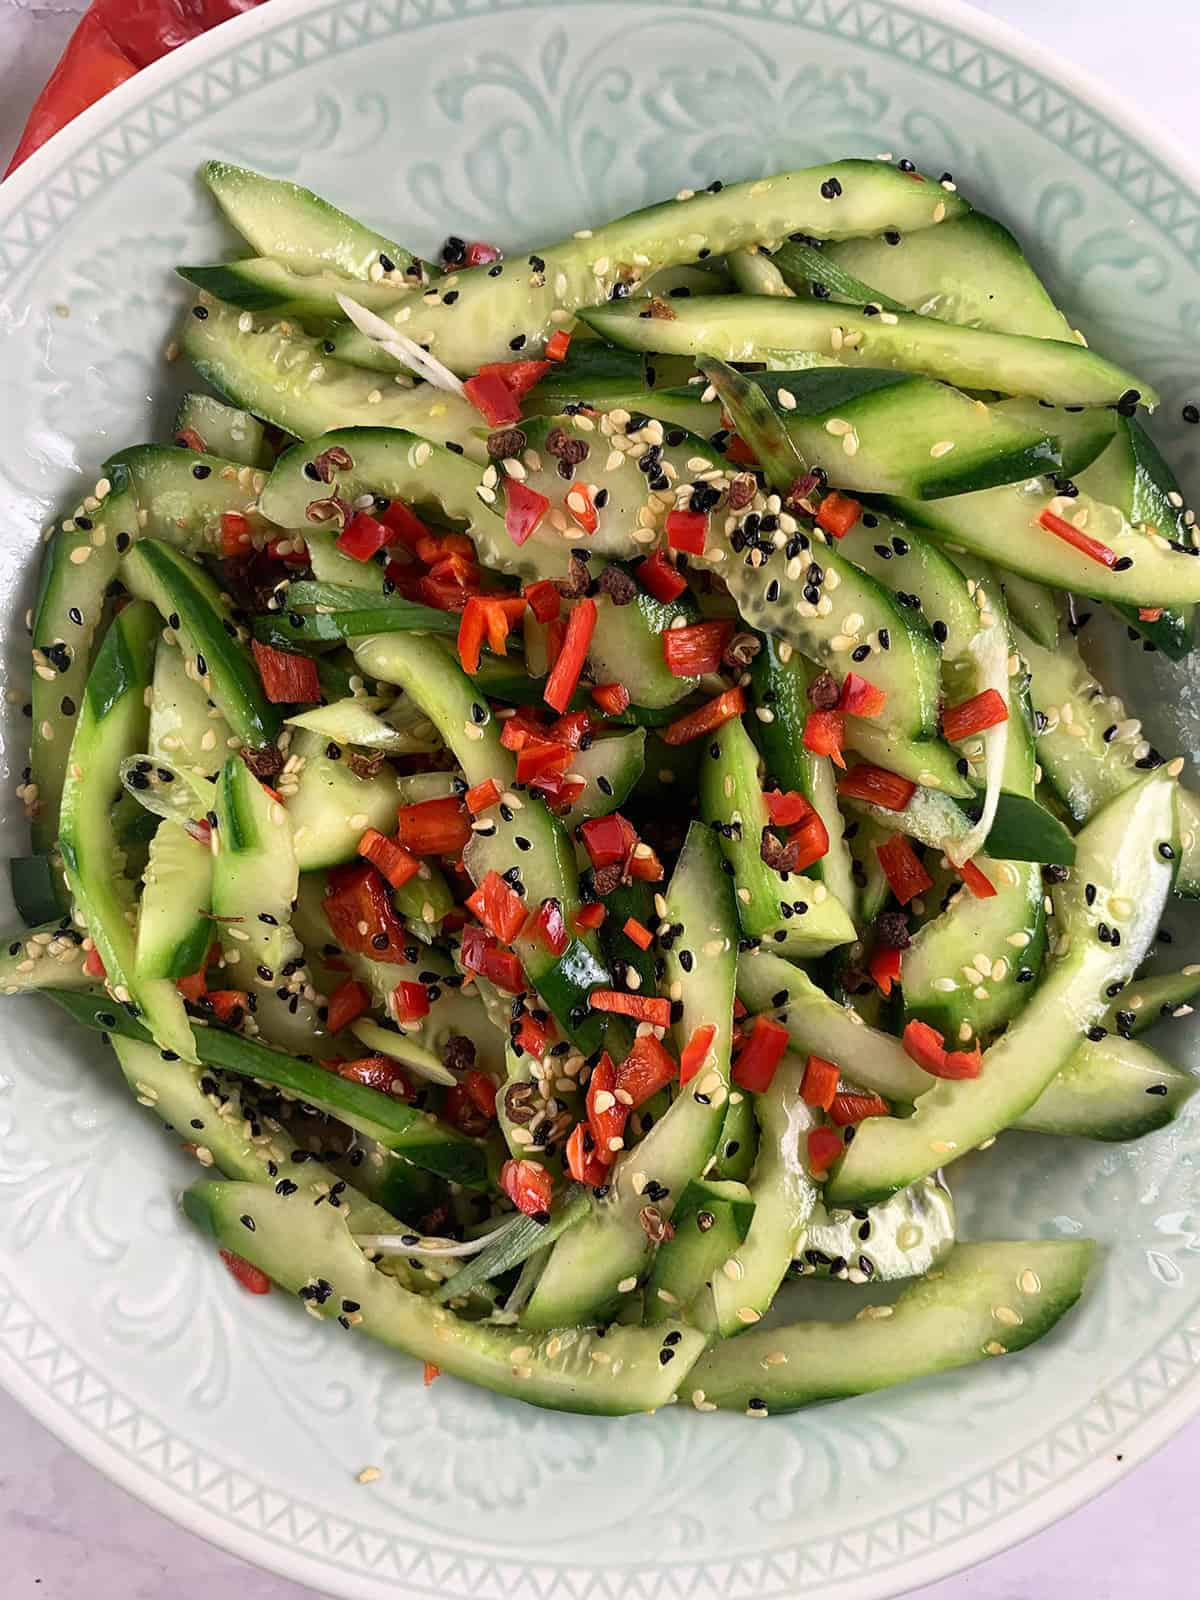 CLOSE UP OF CHINESE CUCUMBER SALAD